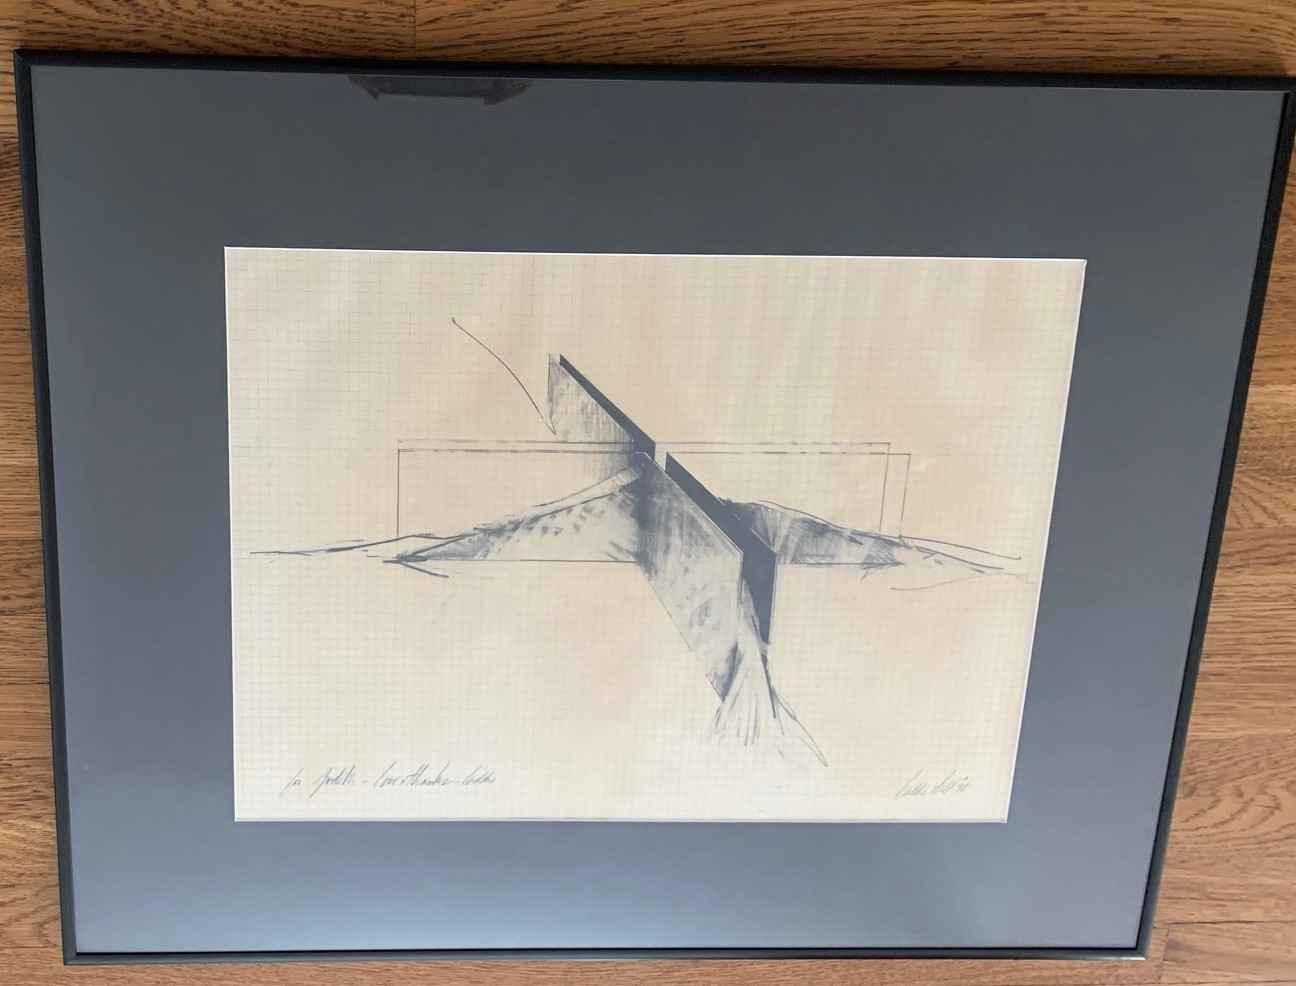 Untitled Study/Drawing by  Laddie John Dill - Masterpiece Online